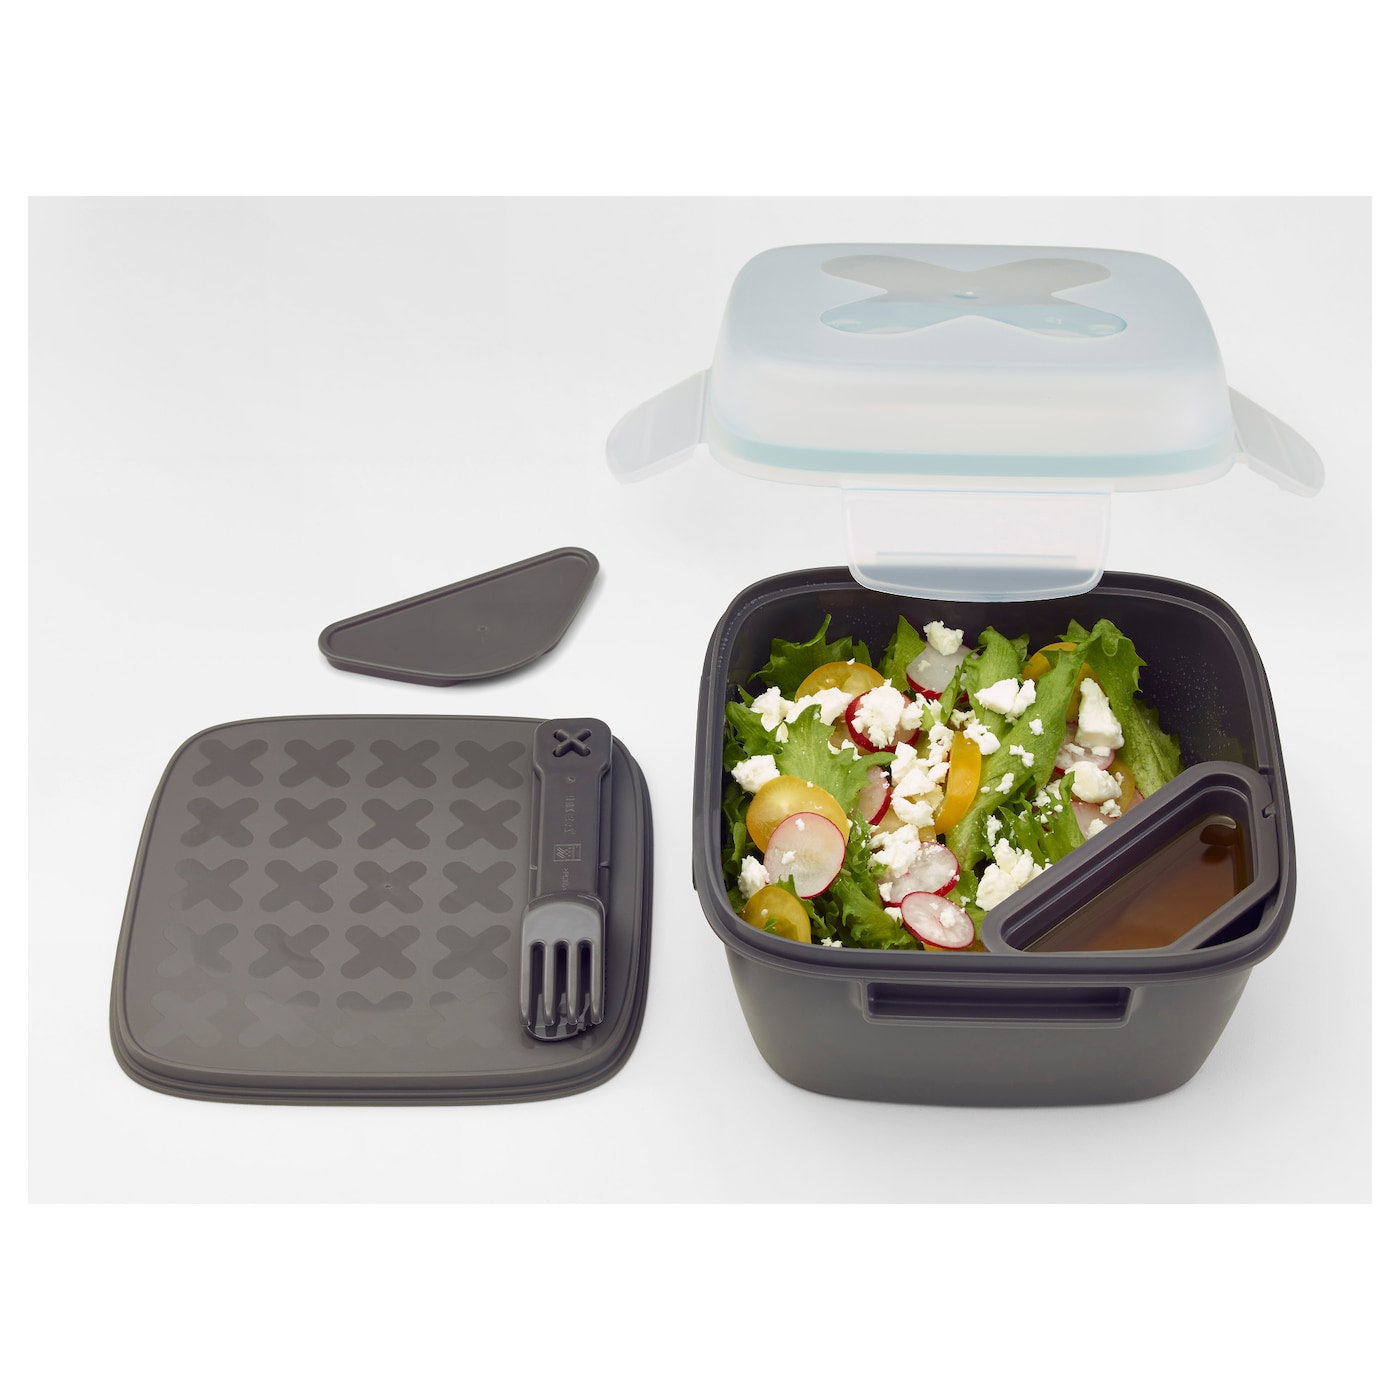 blandning lunch box for salad grey 17x17x11 cm ikea. Black Bedroom Furniture Sets. Home Design Ideas